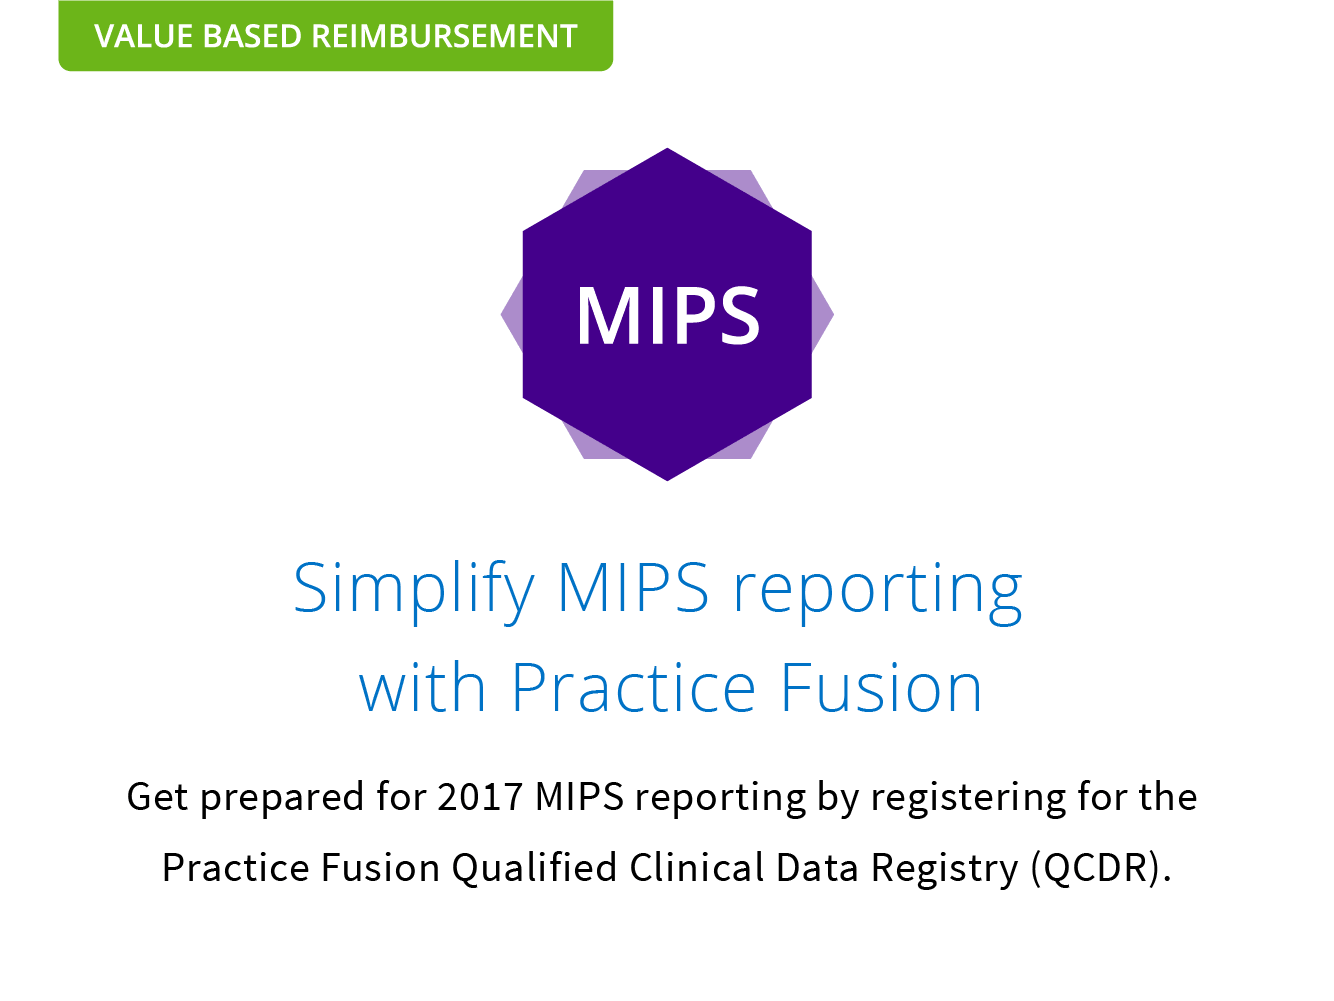 Get prepared for 2017 MIPS reporting by registering for the Practice Fusion Qualified Clinical Data Registry (QCDR)